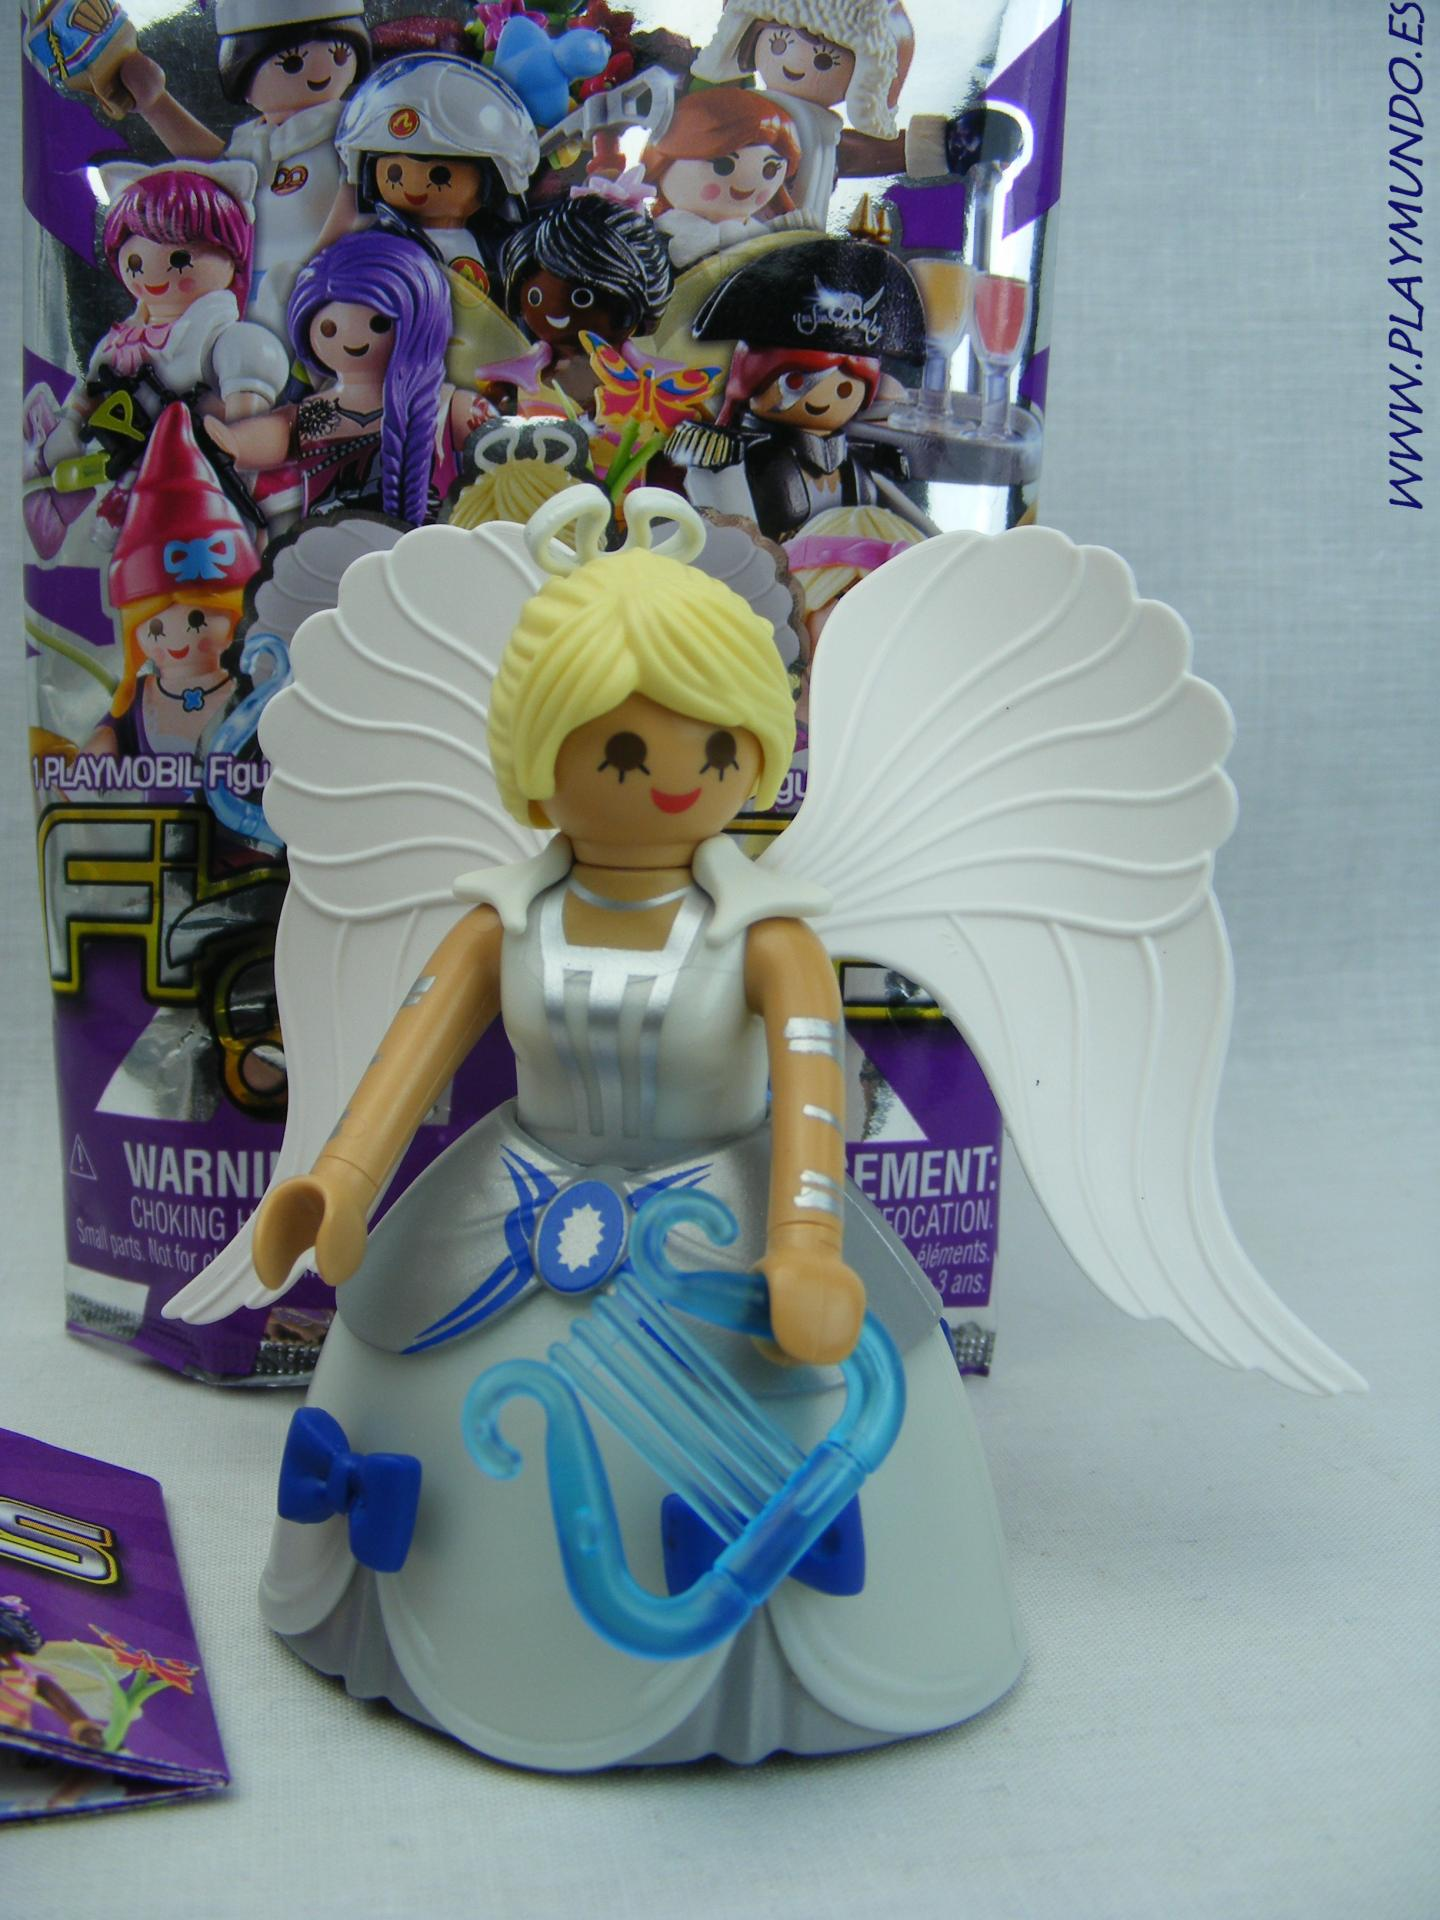 PLAYMOBIL SERIE 17 CHICAS ANGEL CON ARPA